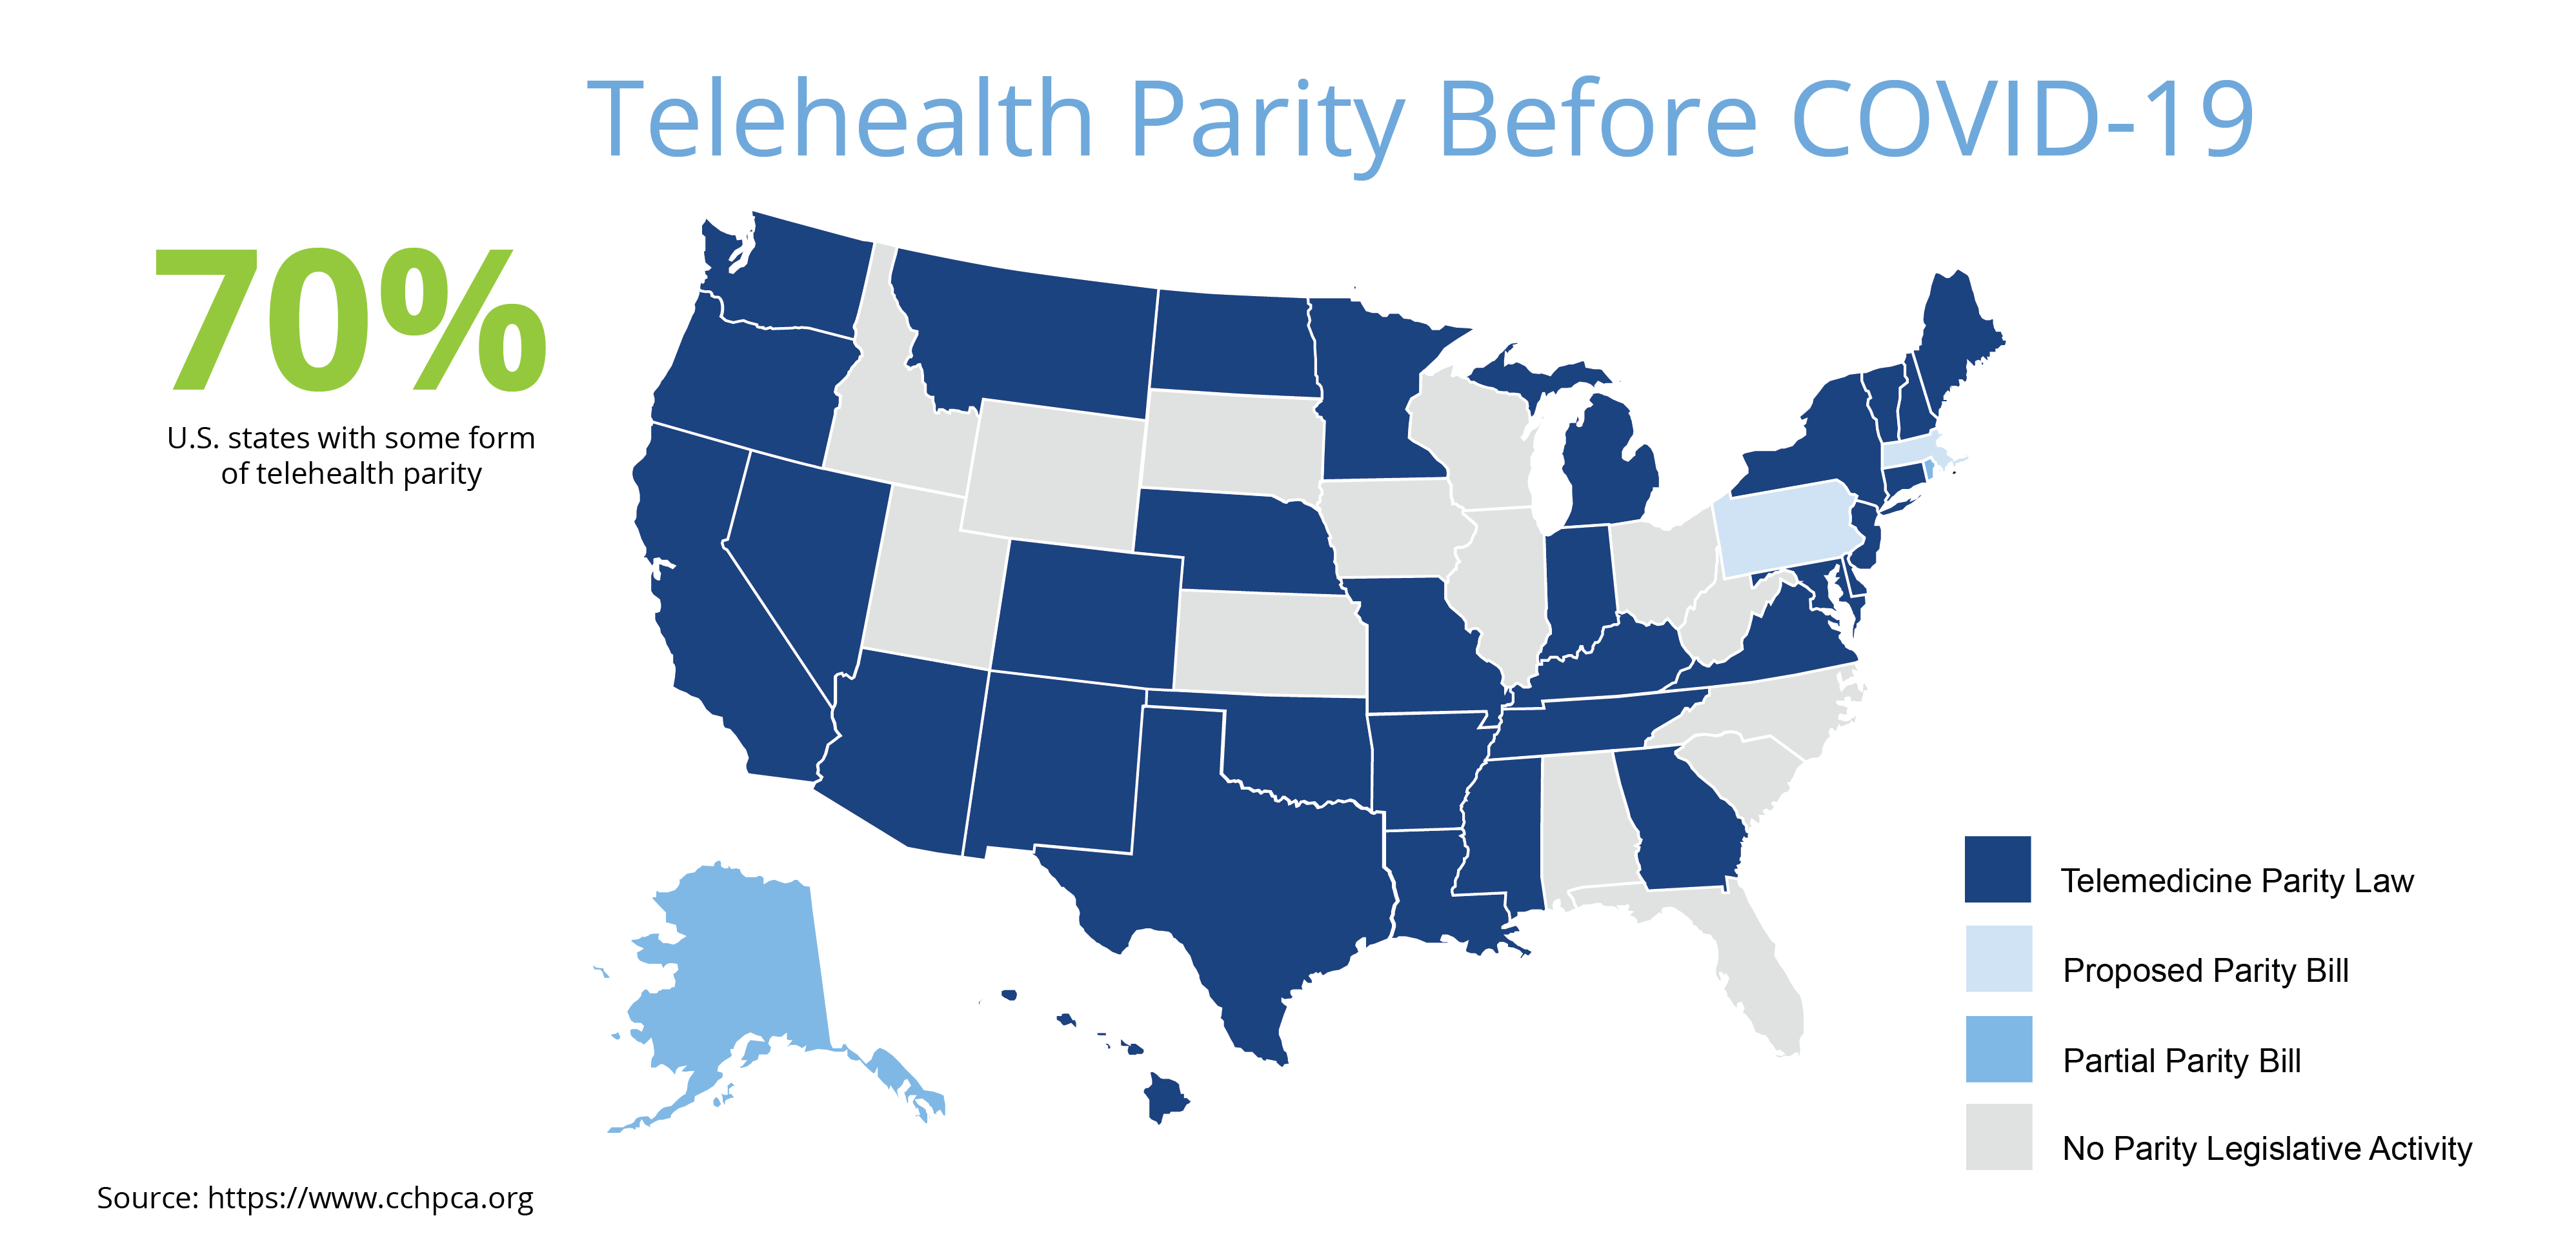 Telehealth parity map before COVID-19